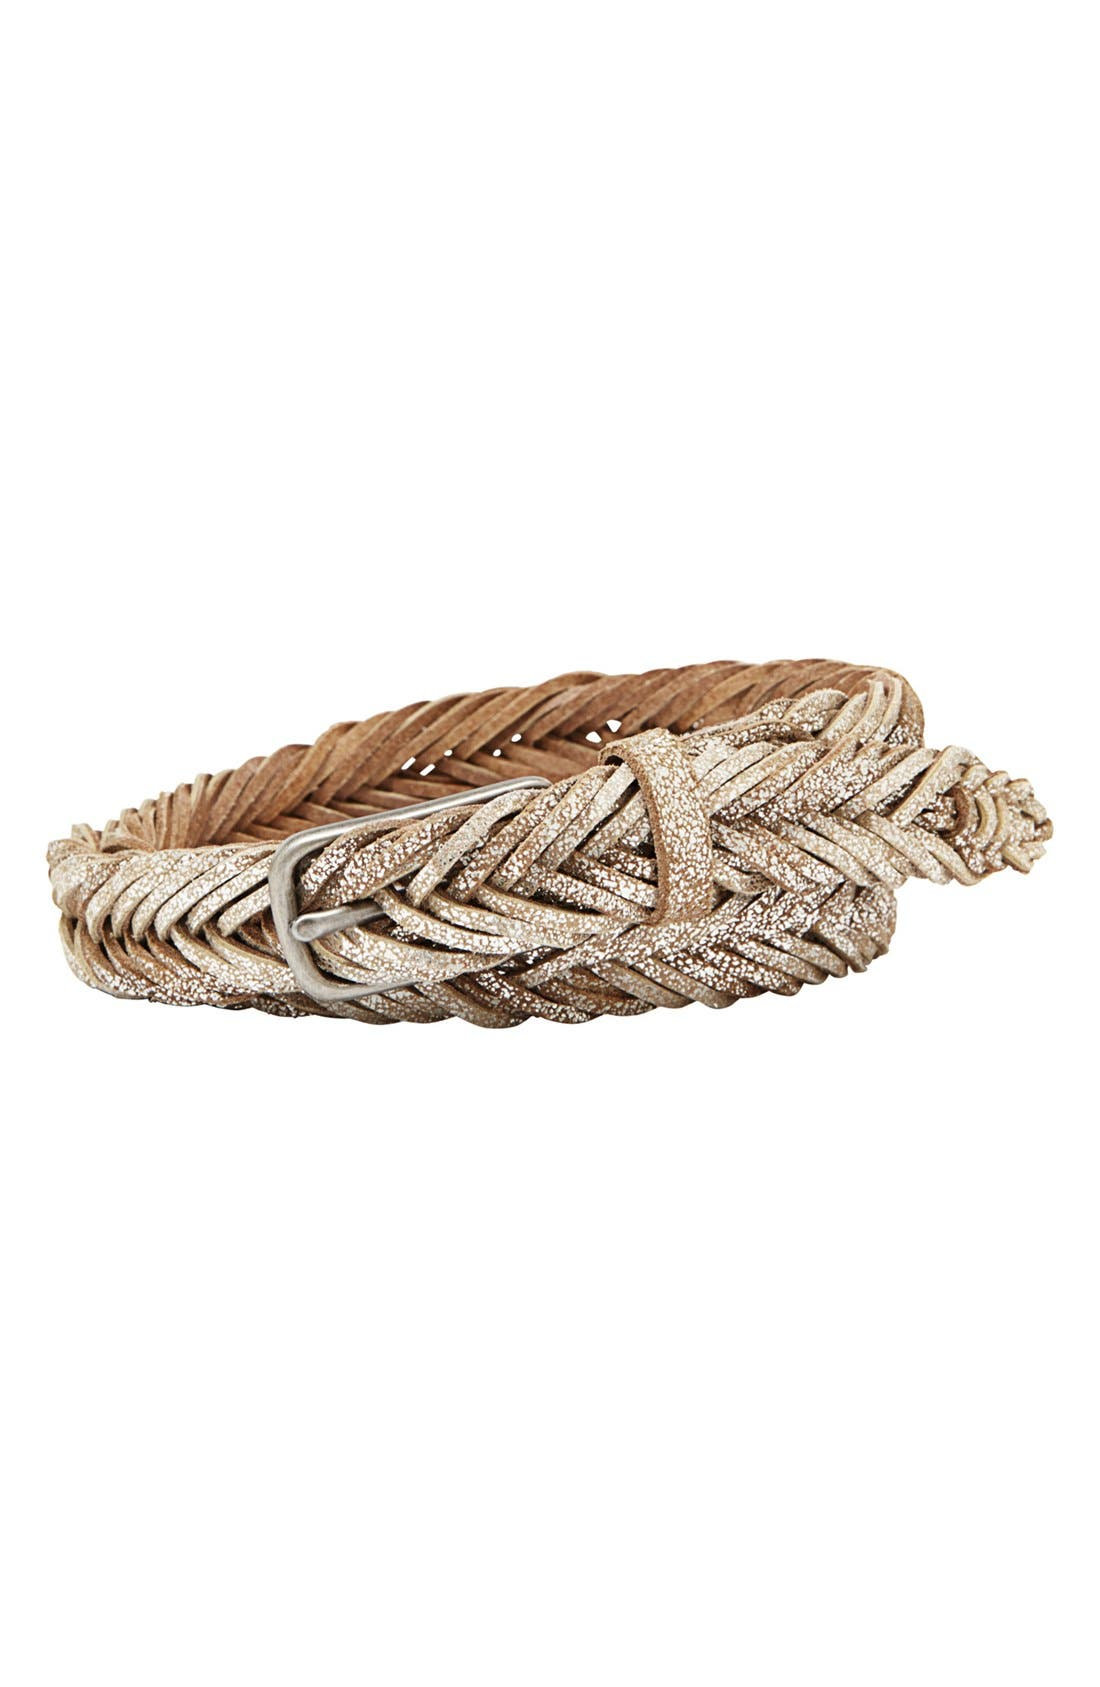 Main Image - Fossil Fishtail Braided Leather Belt